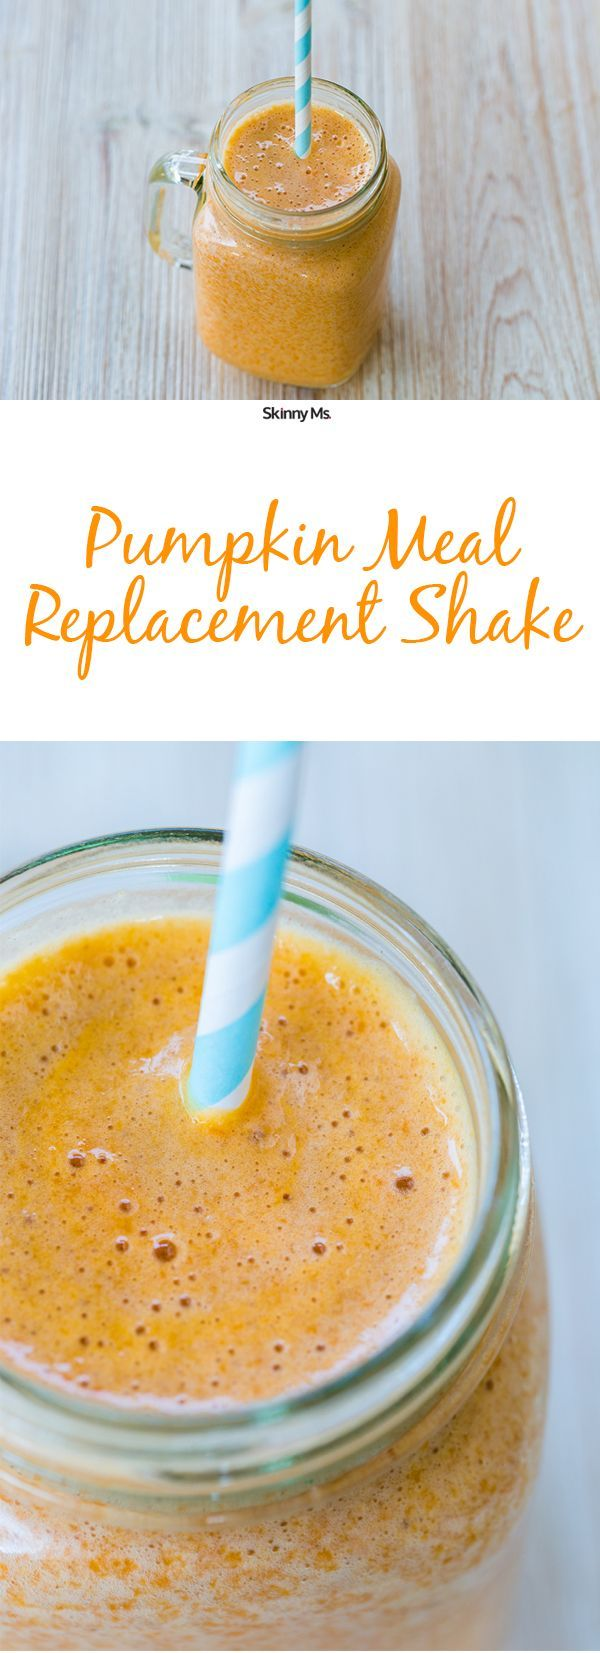 Pumpkin Meal Replacement Shake